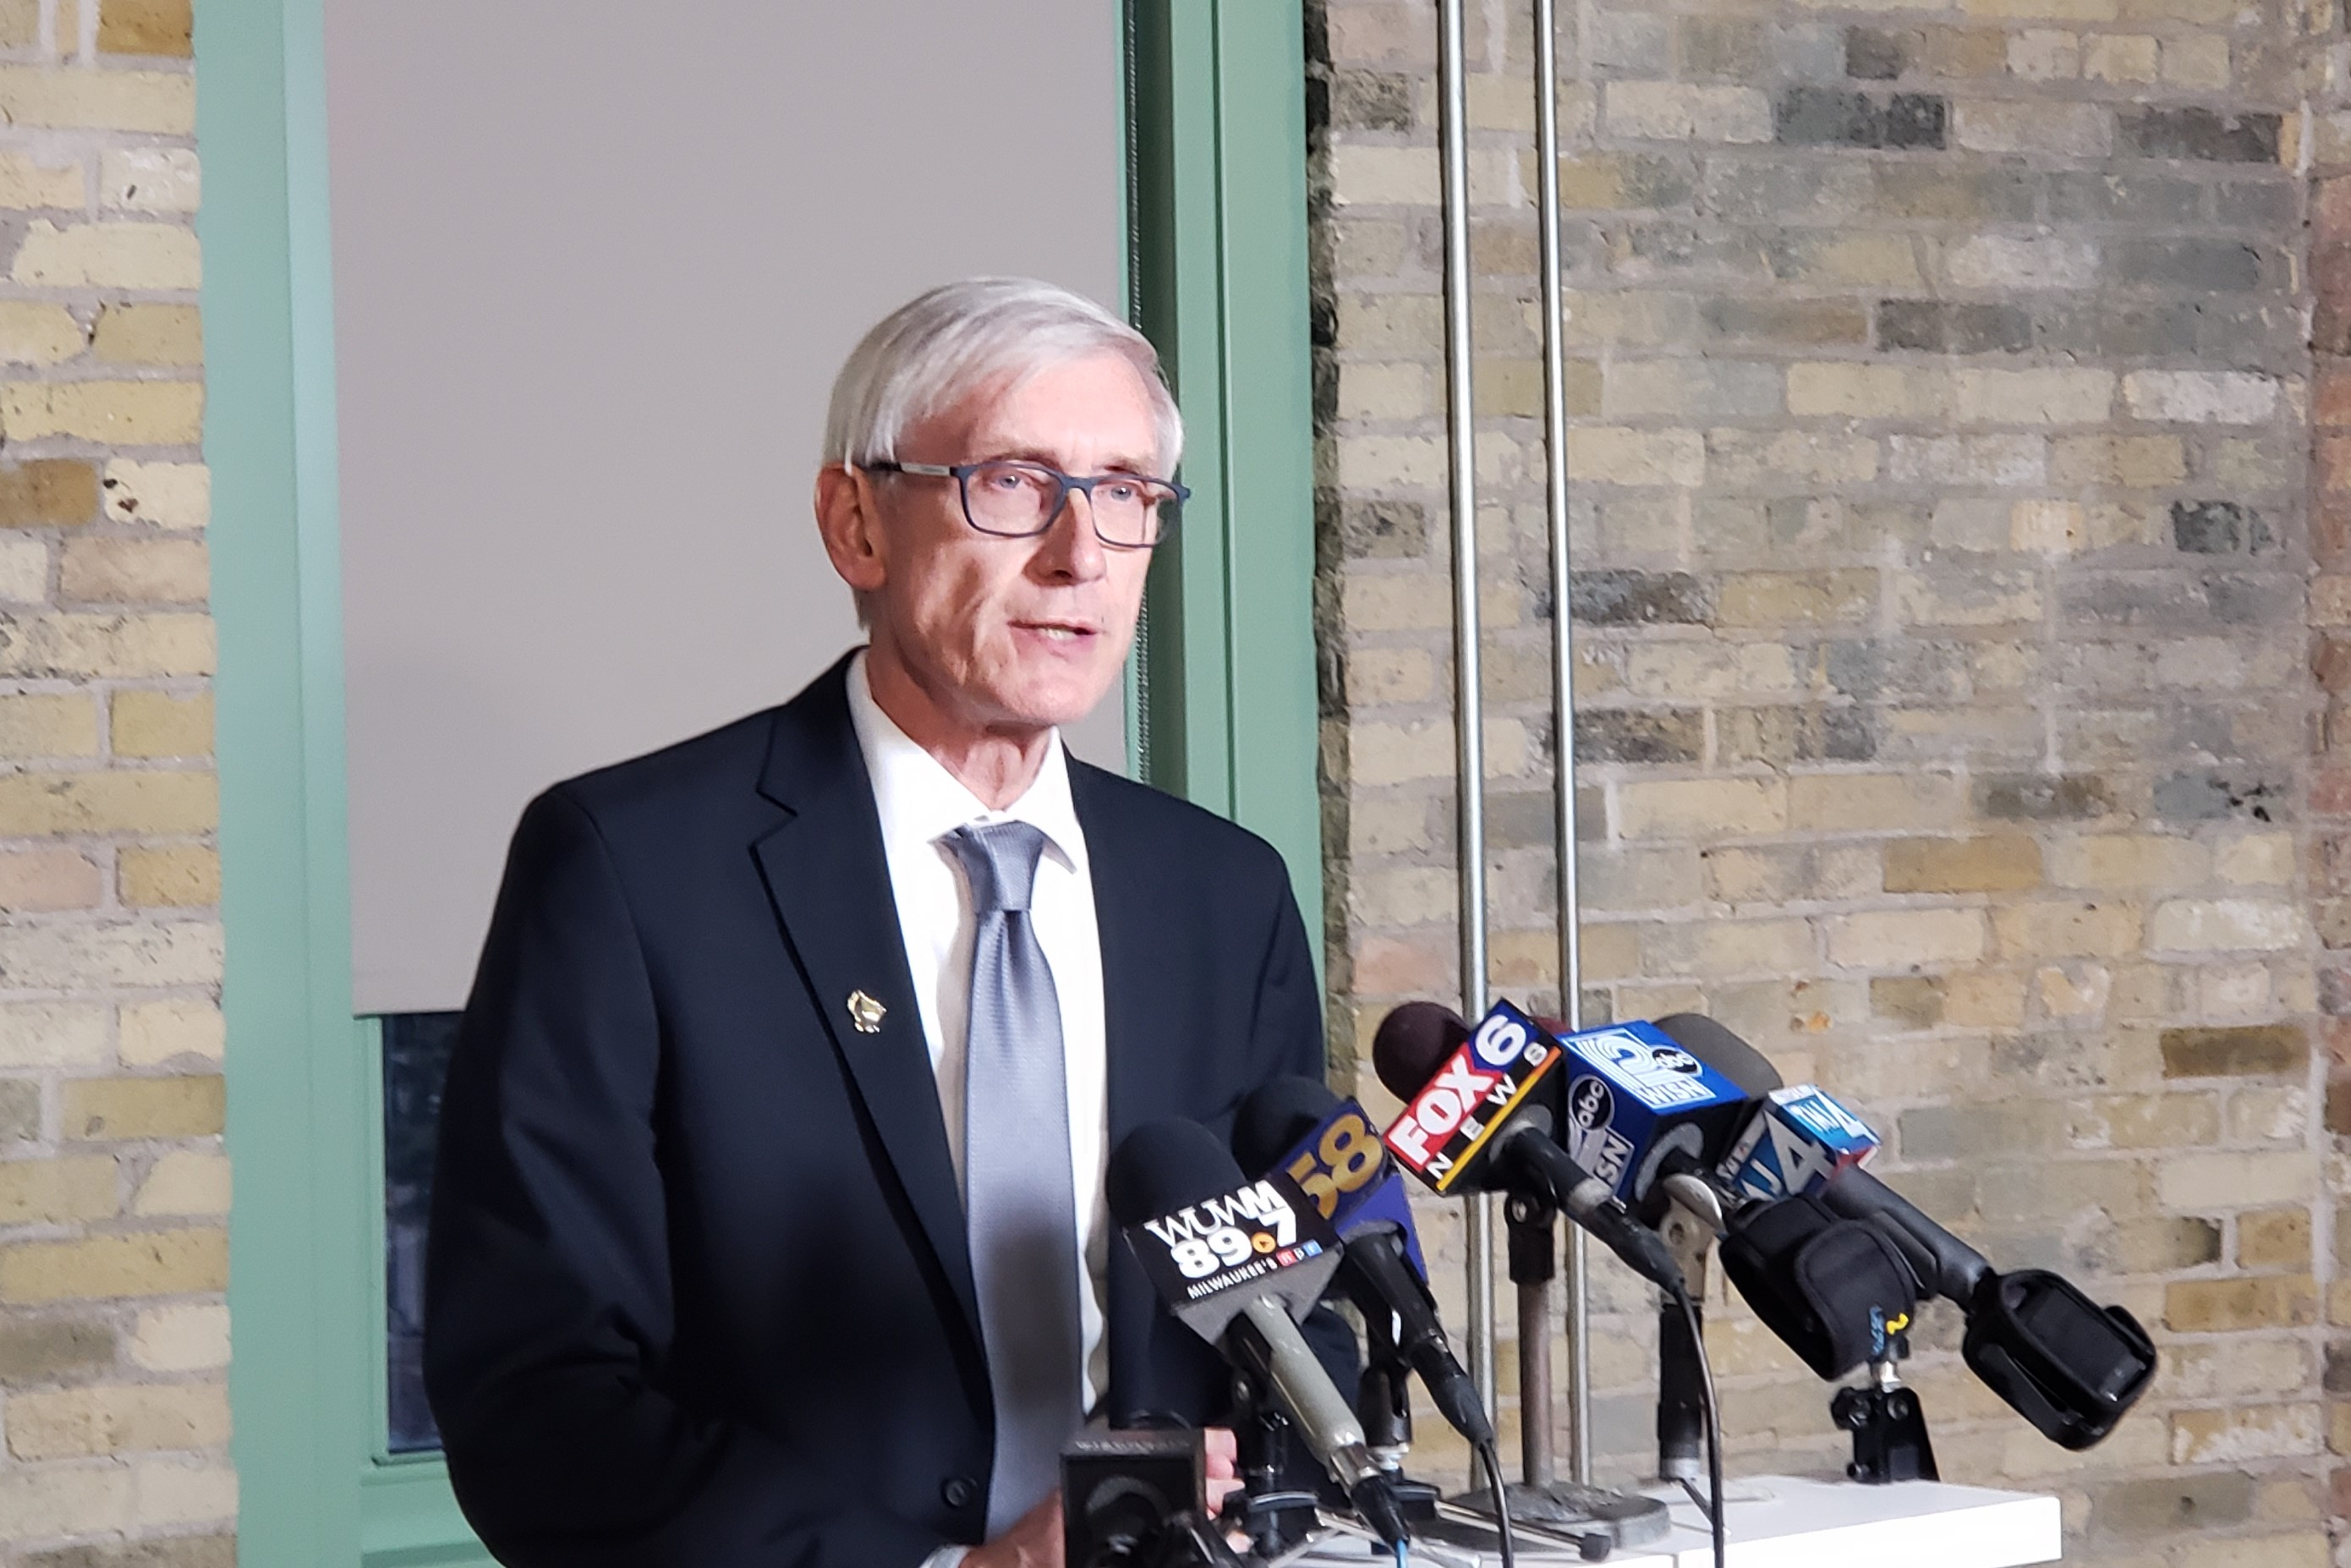 Image result for PHOTOS OF Josh Kaul TONY EVERS